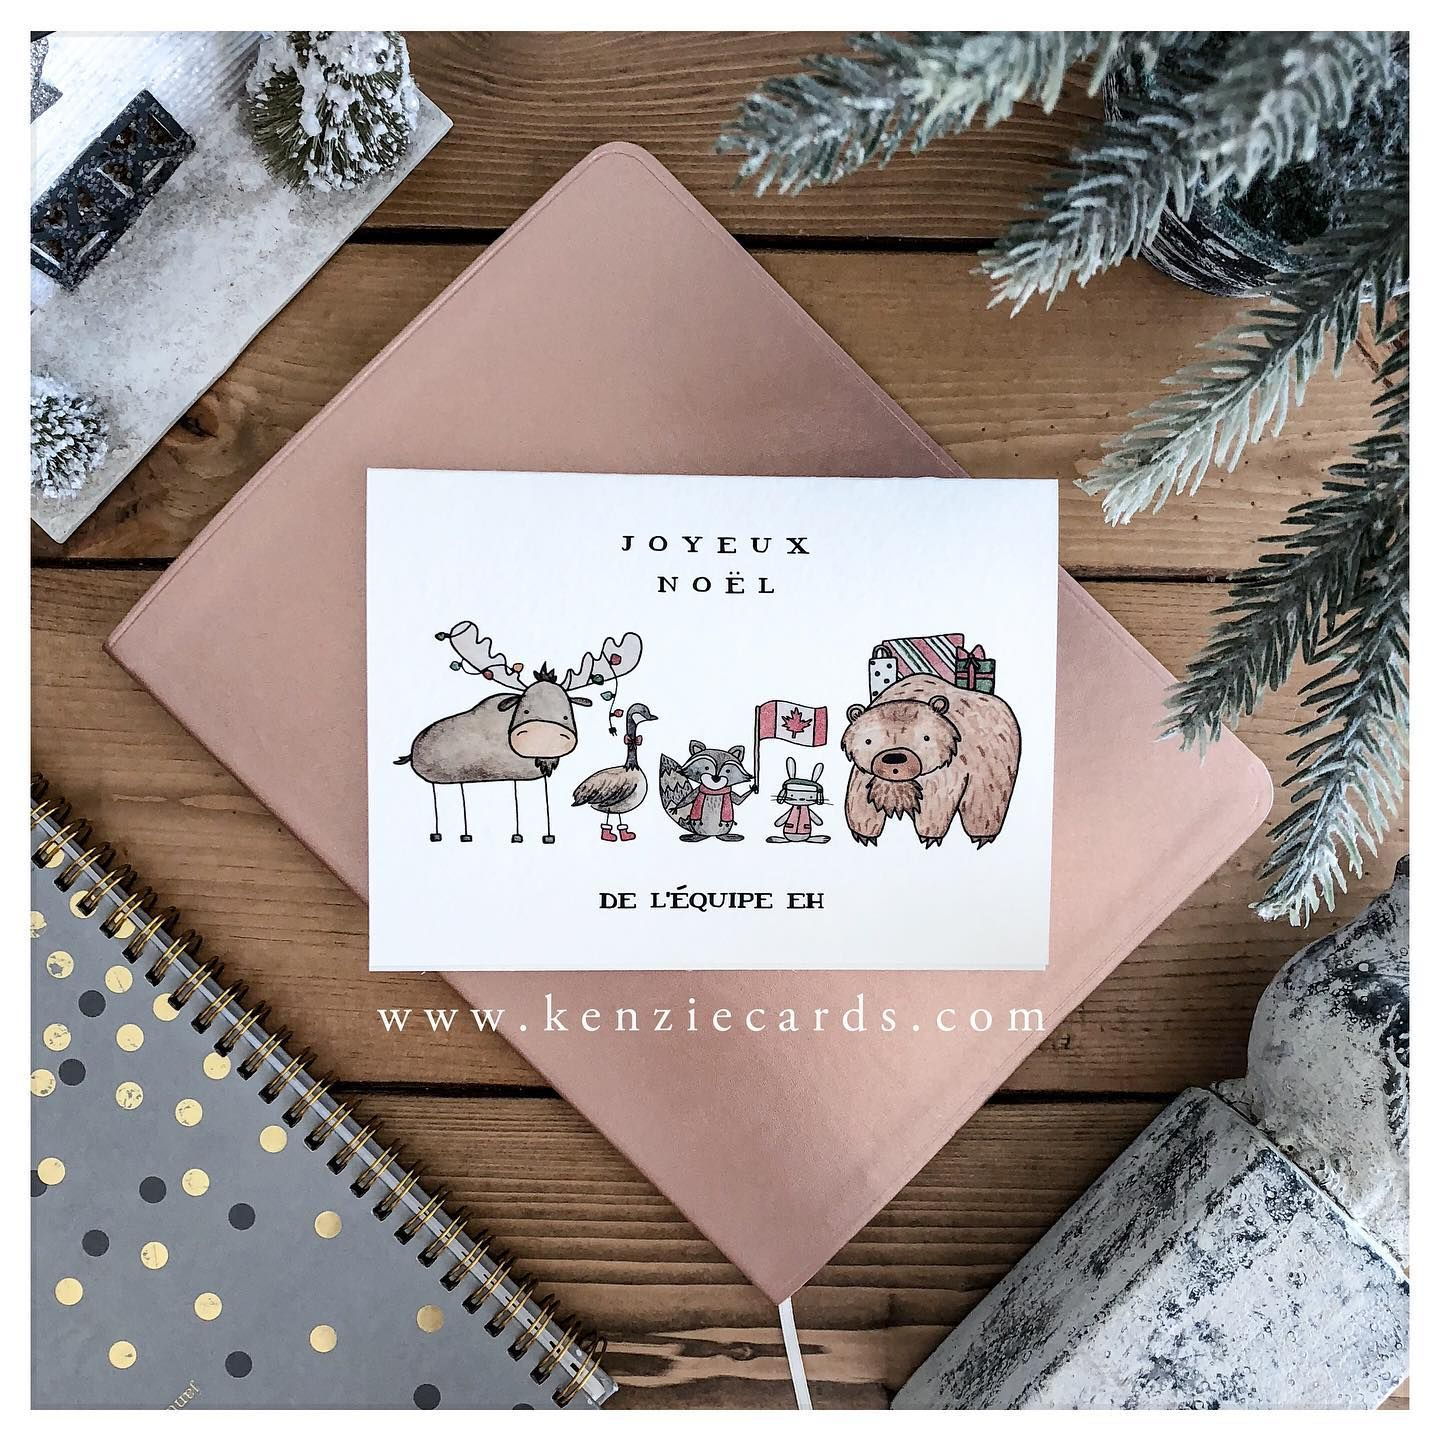 This Is Currently The Top Selling Holiday Kenziecard And Now It Comes In French Feelingca Christmas Cards Christmas Greeting Cards Canadian Gifts